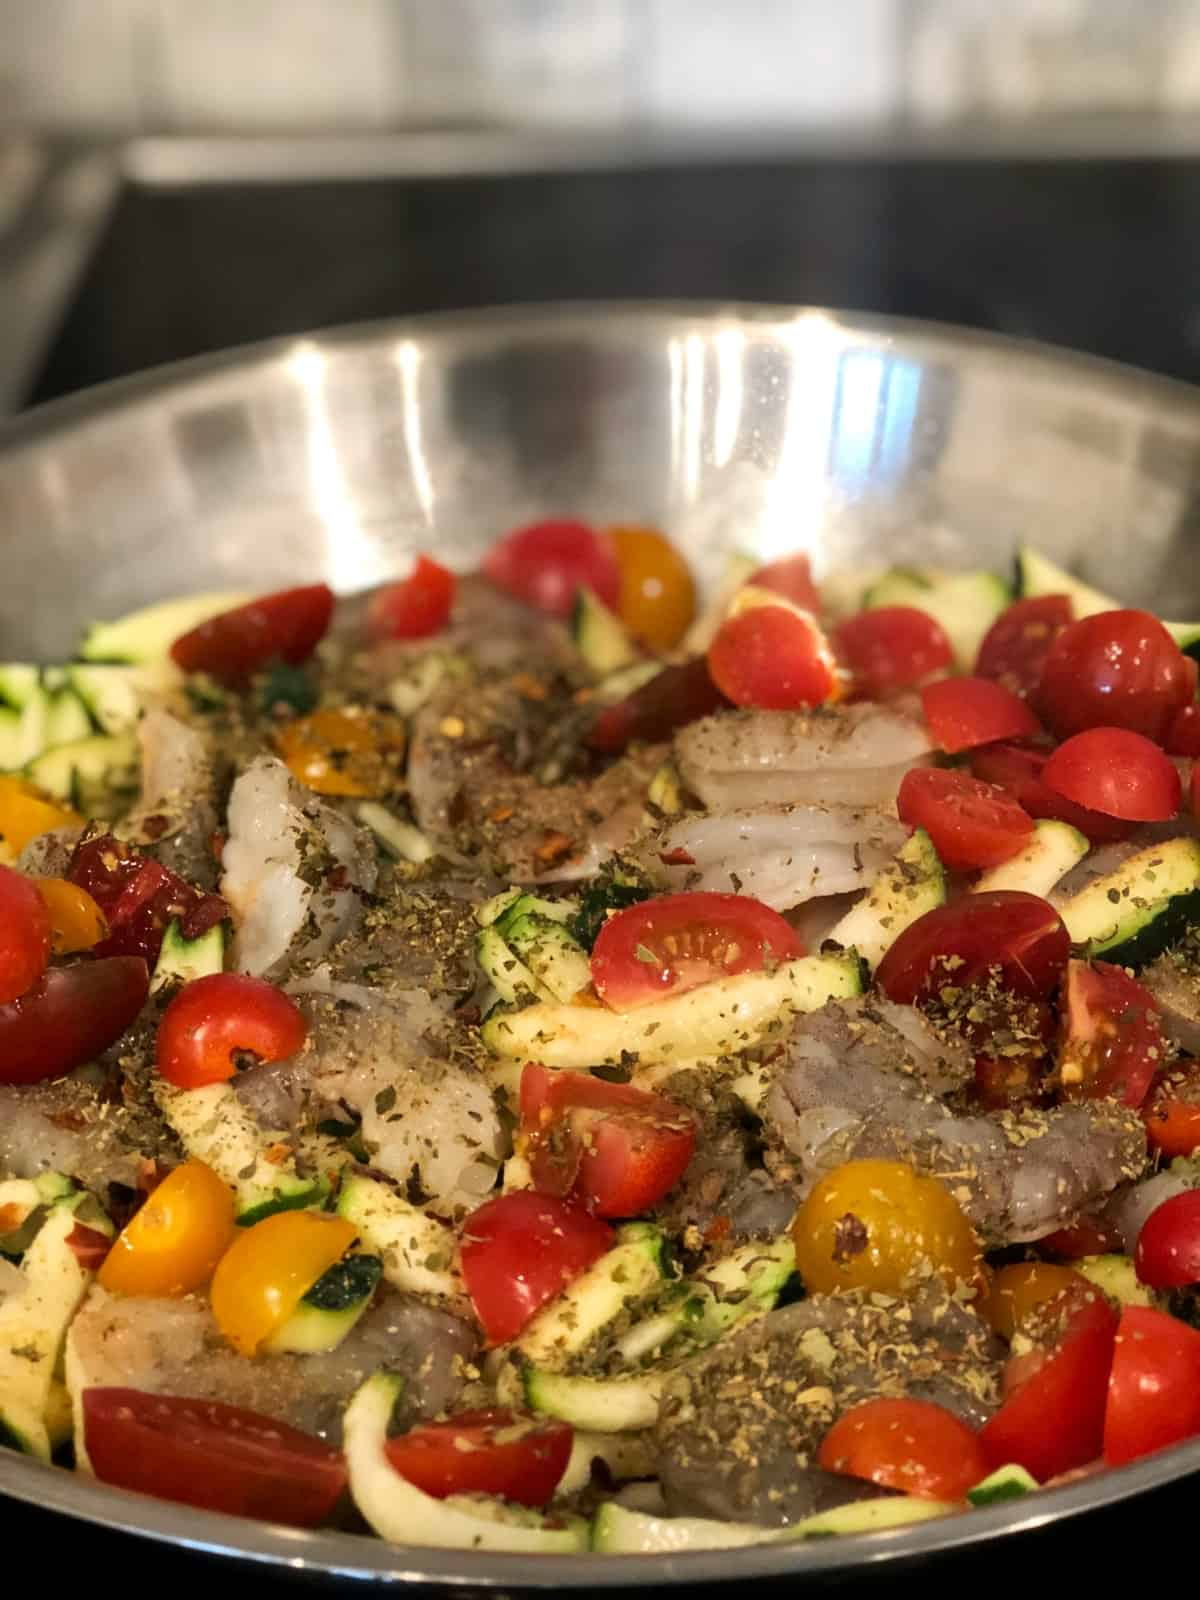 Uncooked shrimp, zucchini, tomatoes and spices in saute pan.